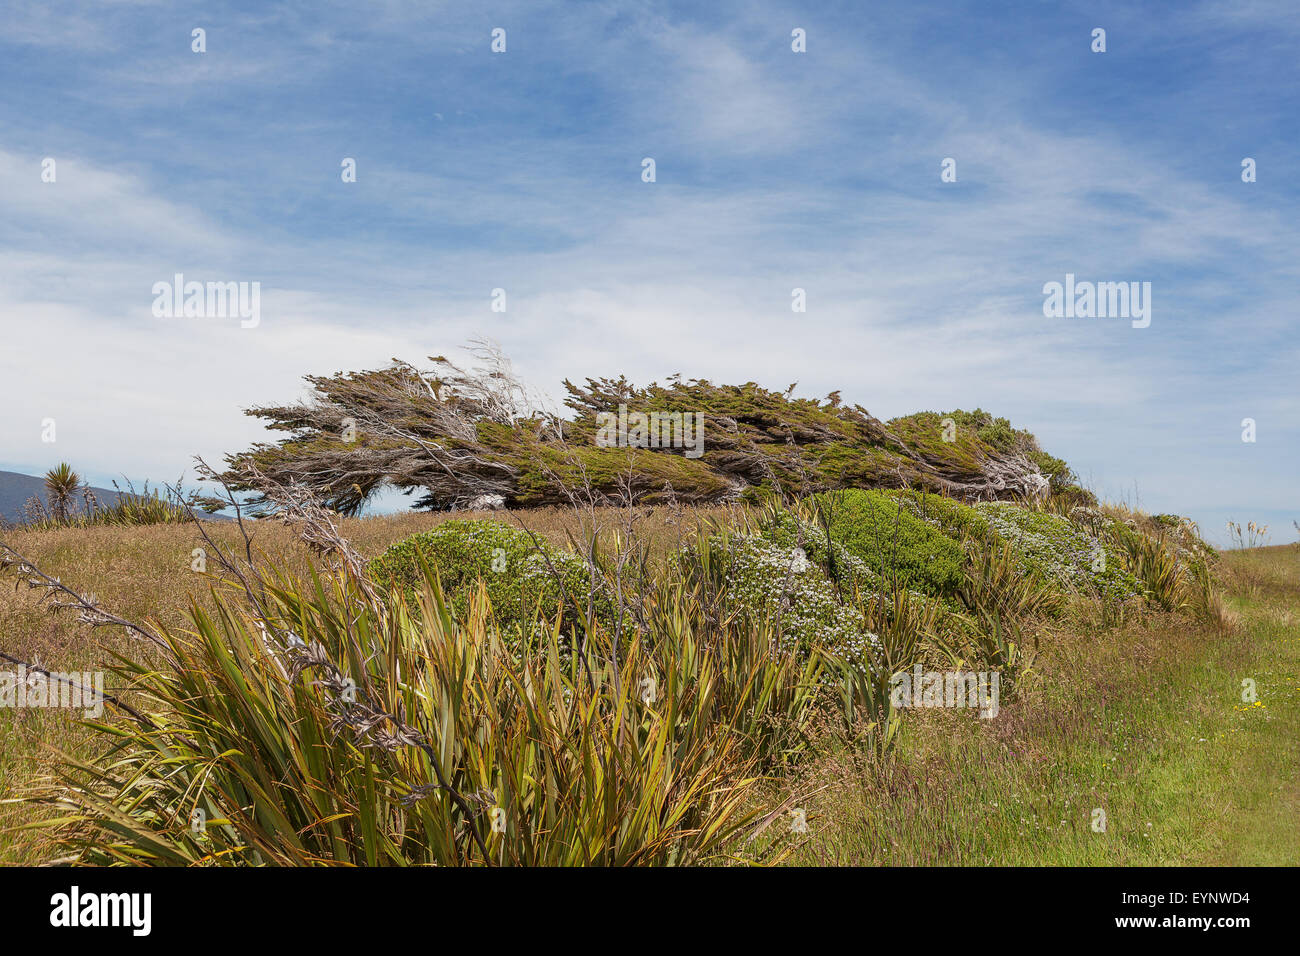 Windswept Trees Grass Stock Photos & Windswept Trees Grass Stock ...